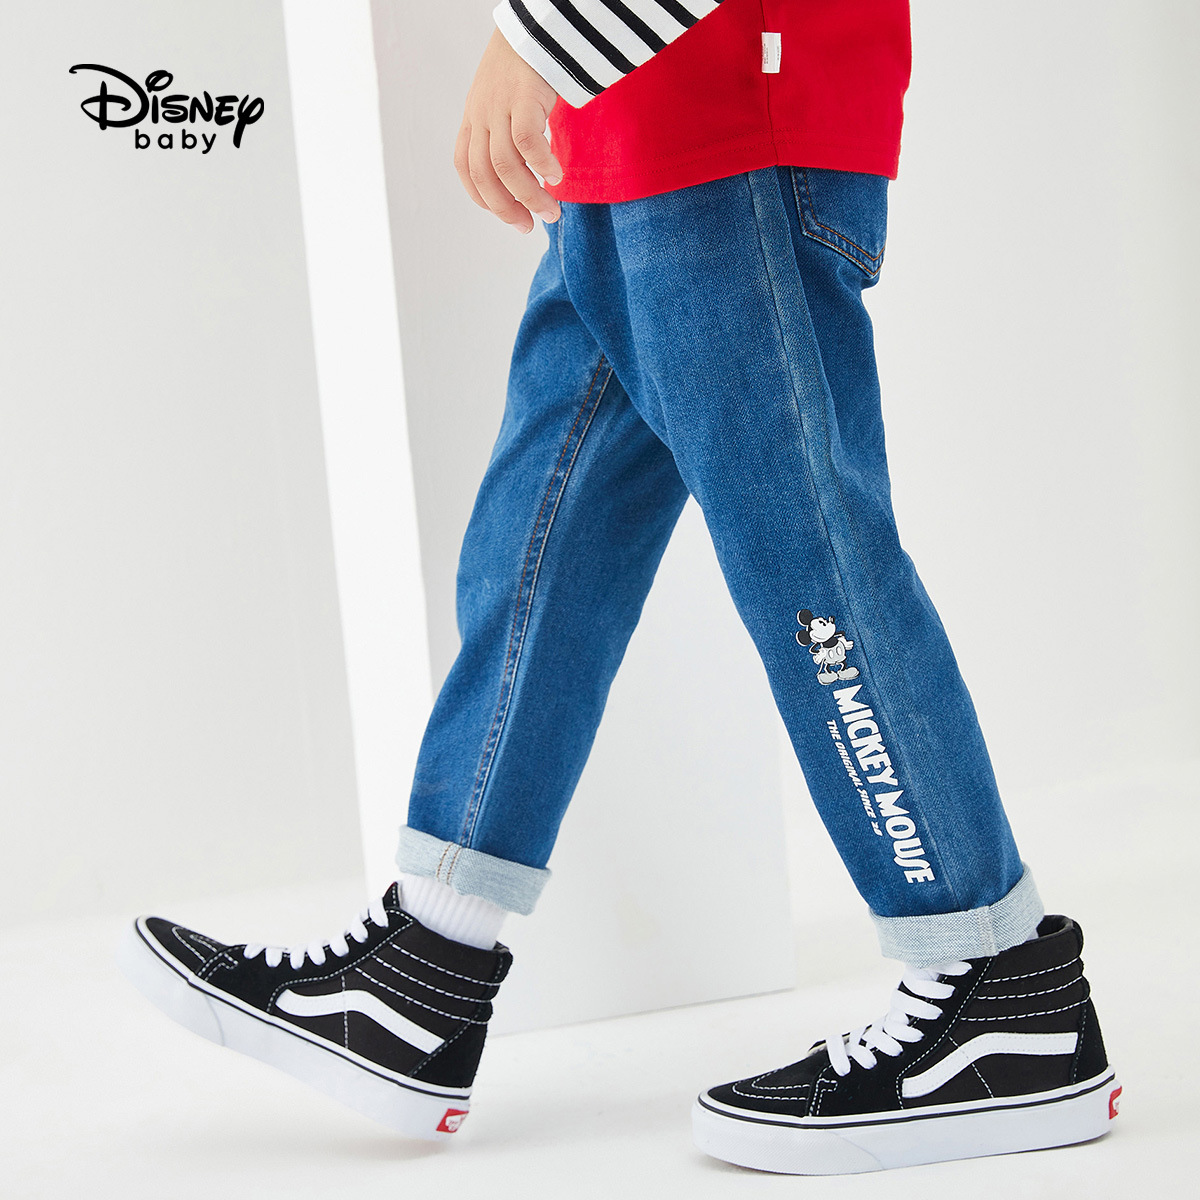 Original Disney Boy Jeans Spring And Autumn New Handsome Children's Wear Pants Fashion Casual Sports Pants DB031ME20